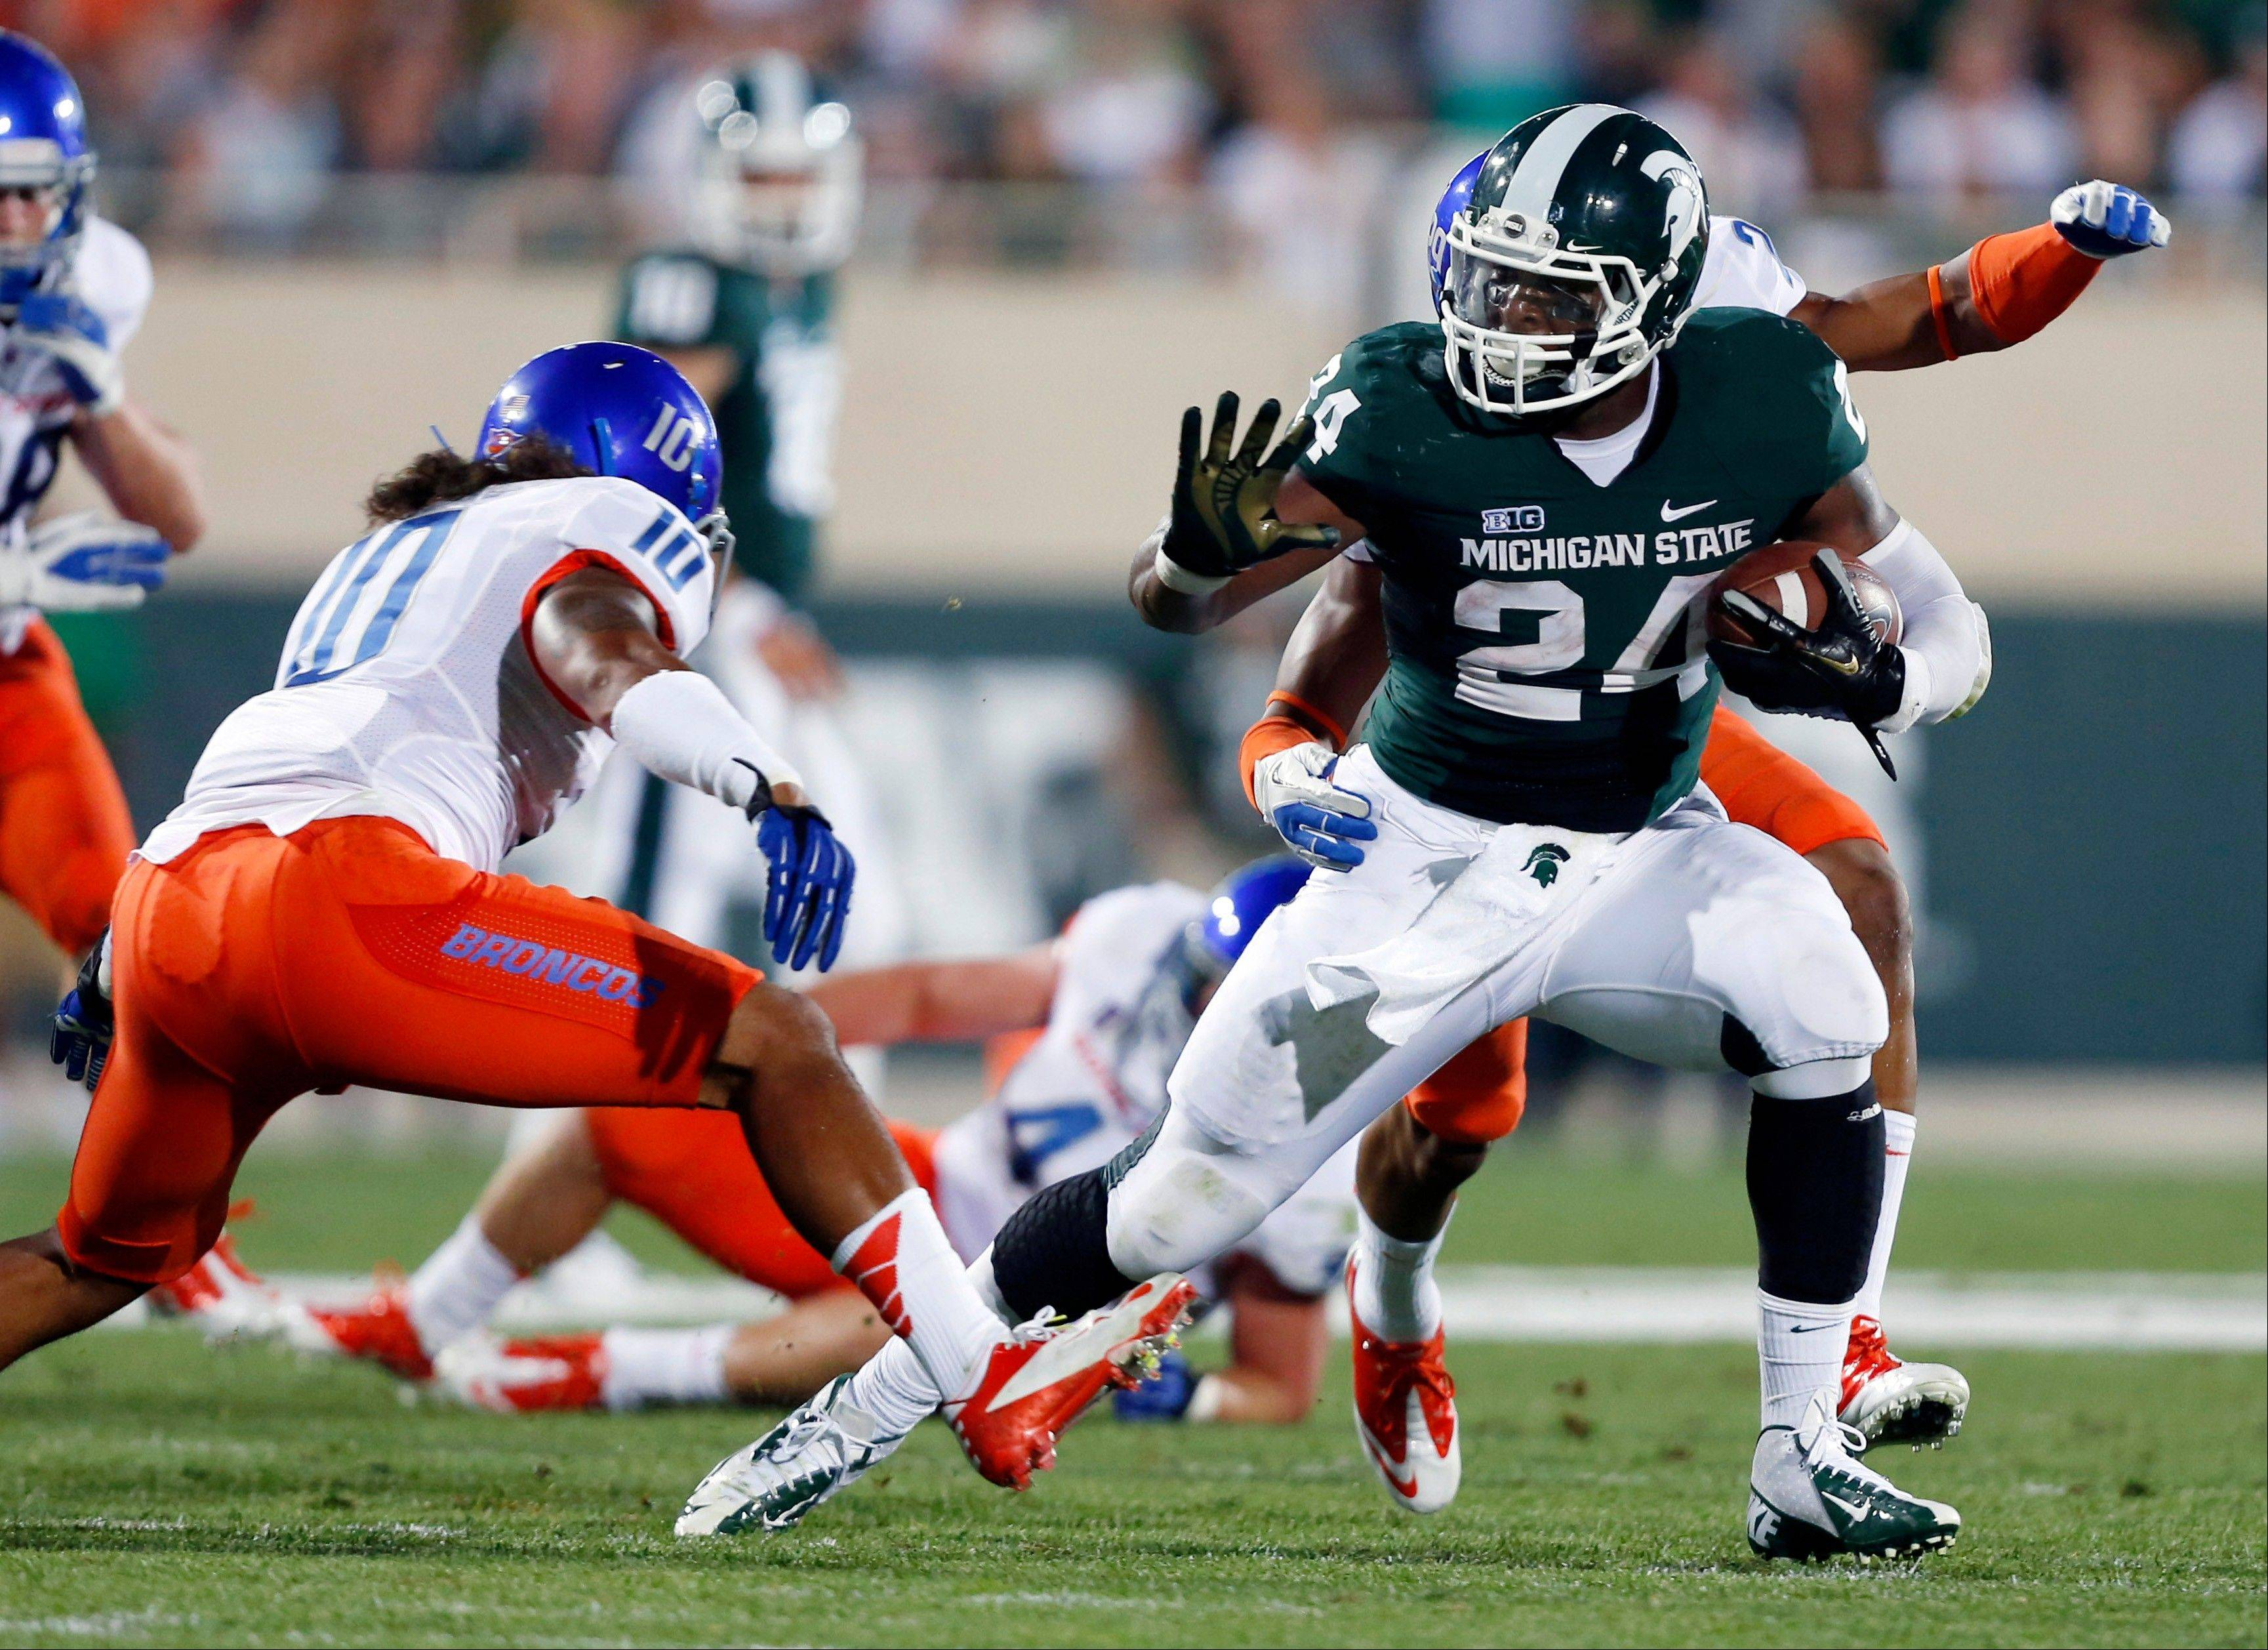 Michigan State's Le'Veon Bell, right, rushes against Boise State's Jeremy Ioane during the first quarter Friday in East Lansing, Mich.